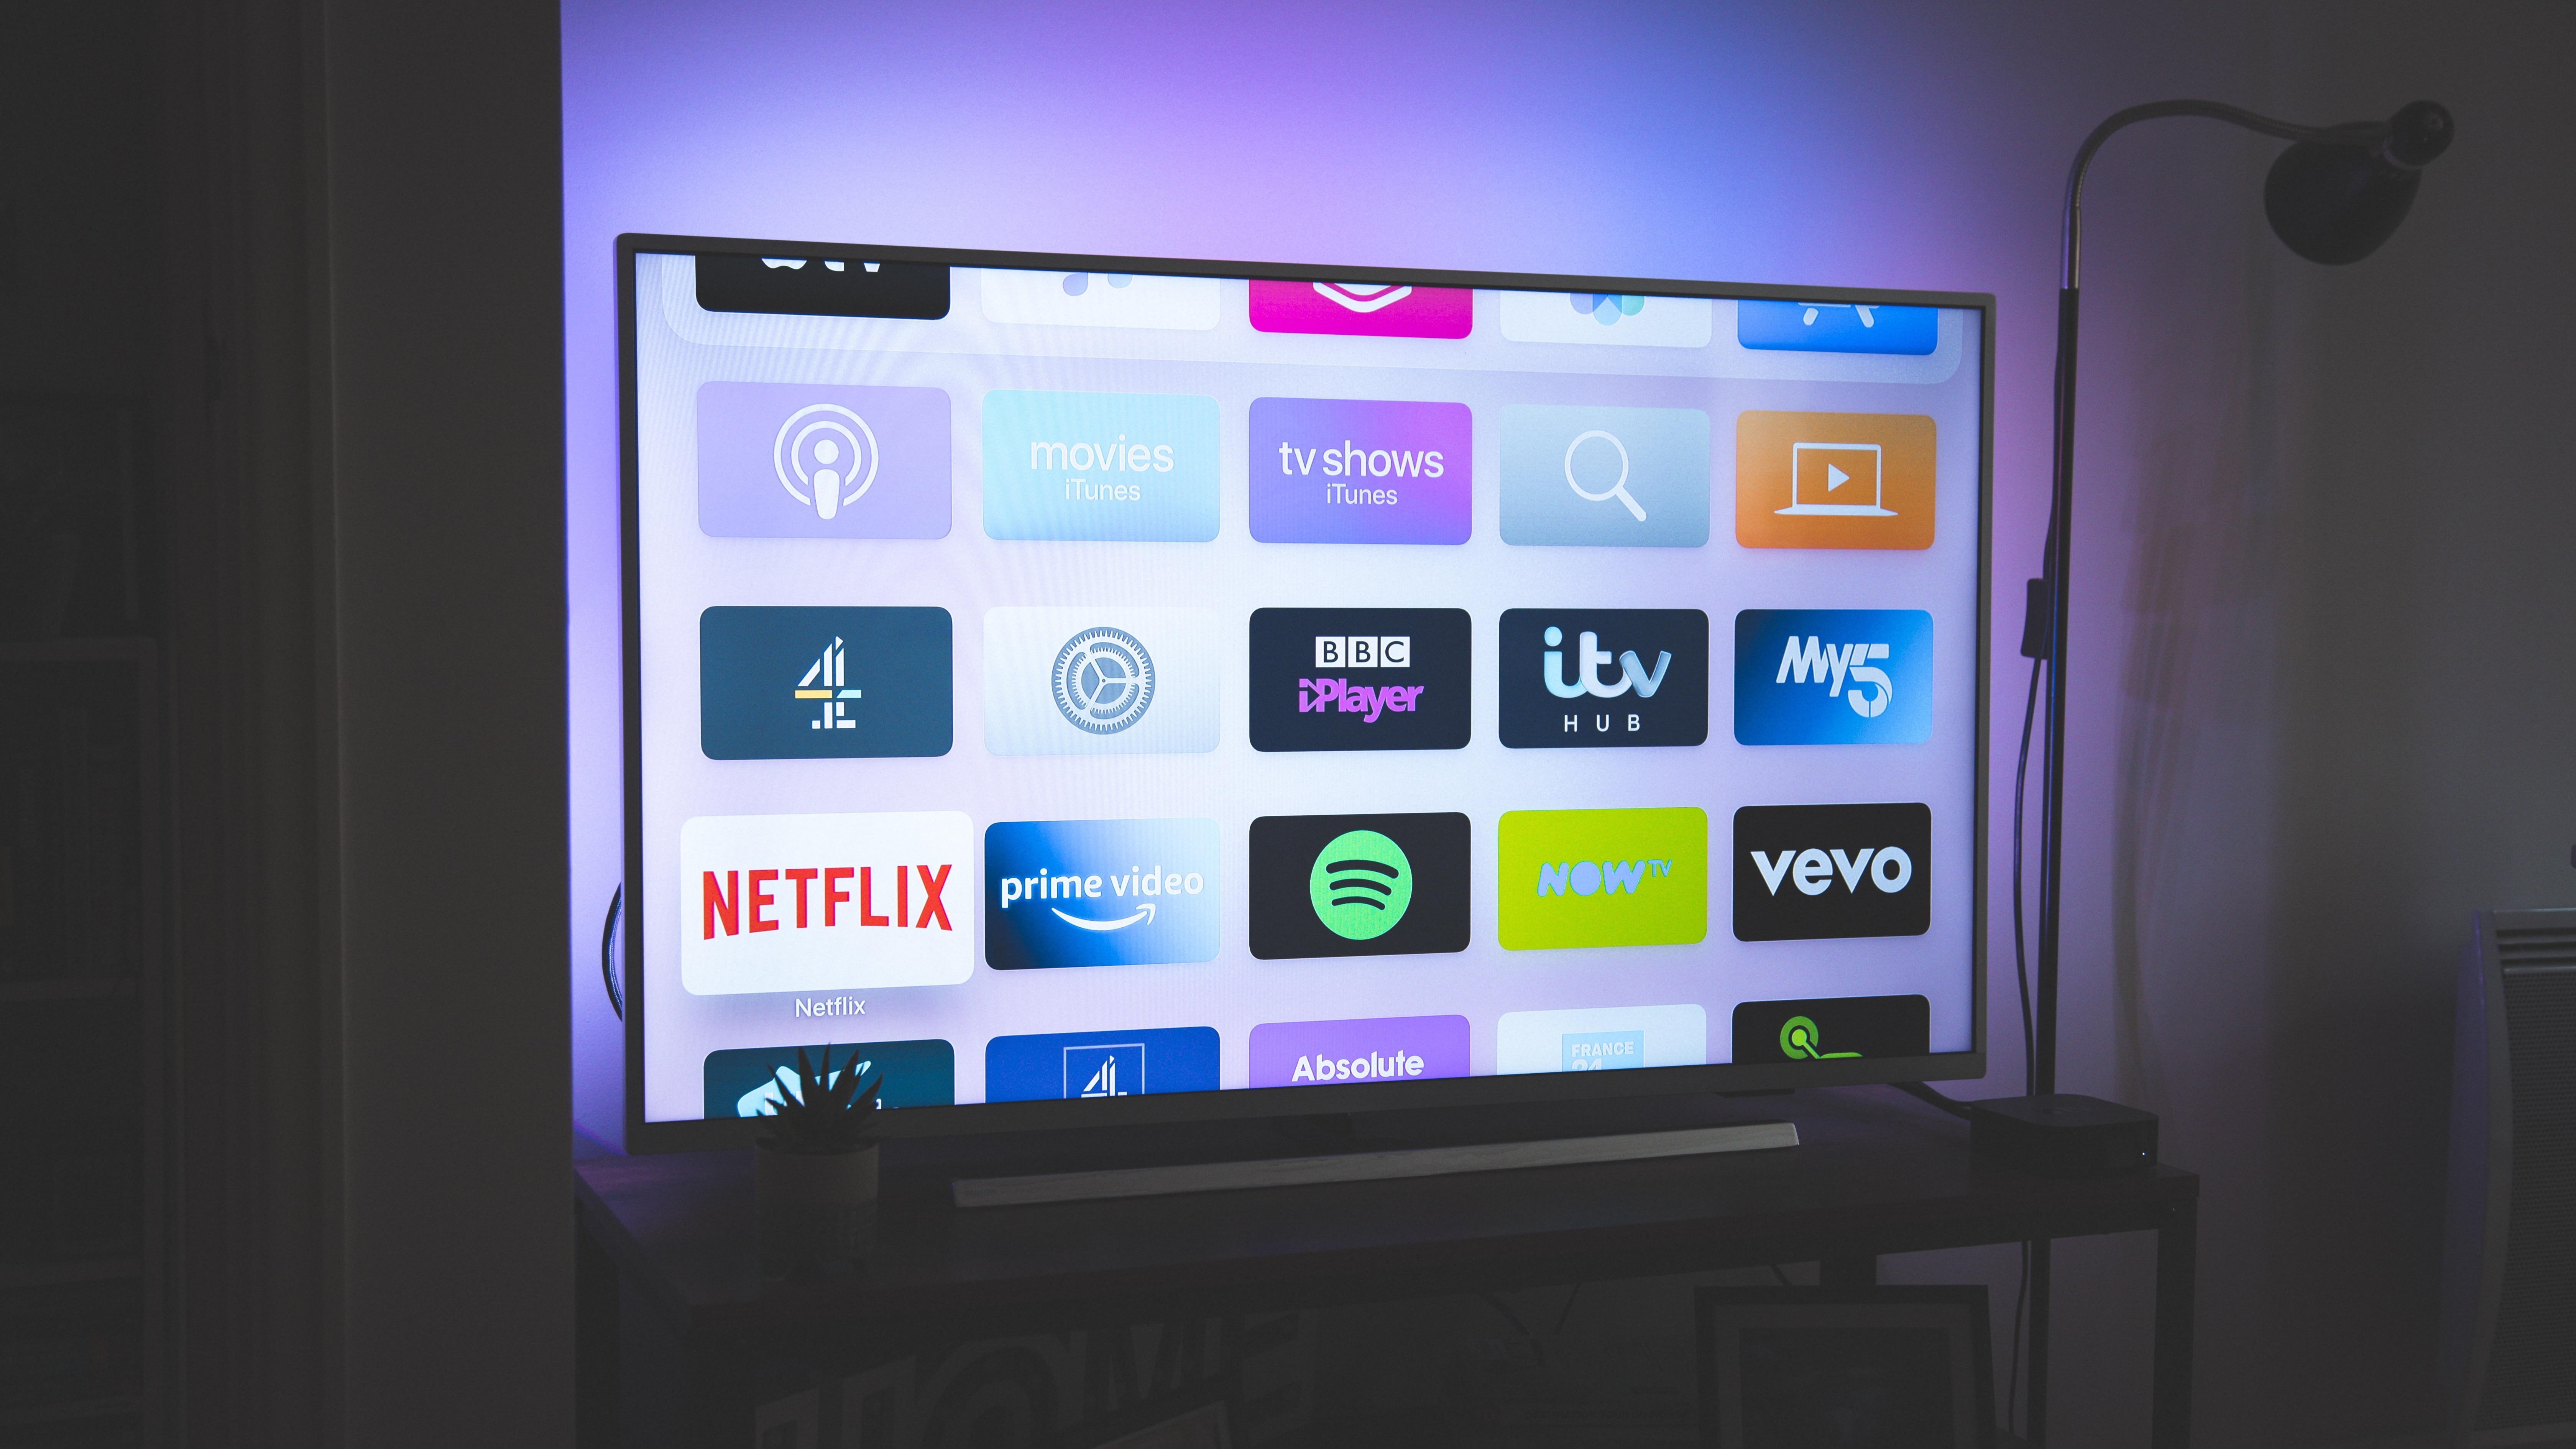 /how-to-jailbreak-your-amazon-firestick-in-2021-0t1y353g feature image